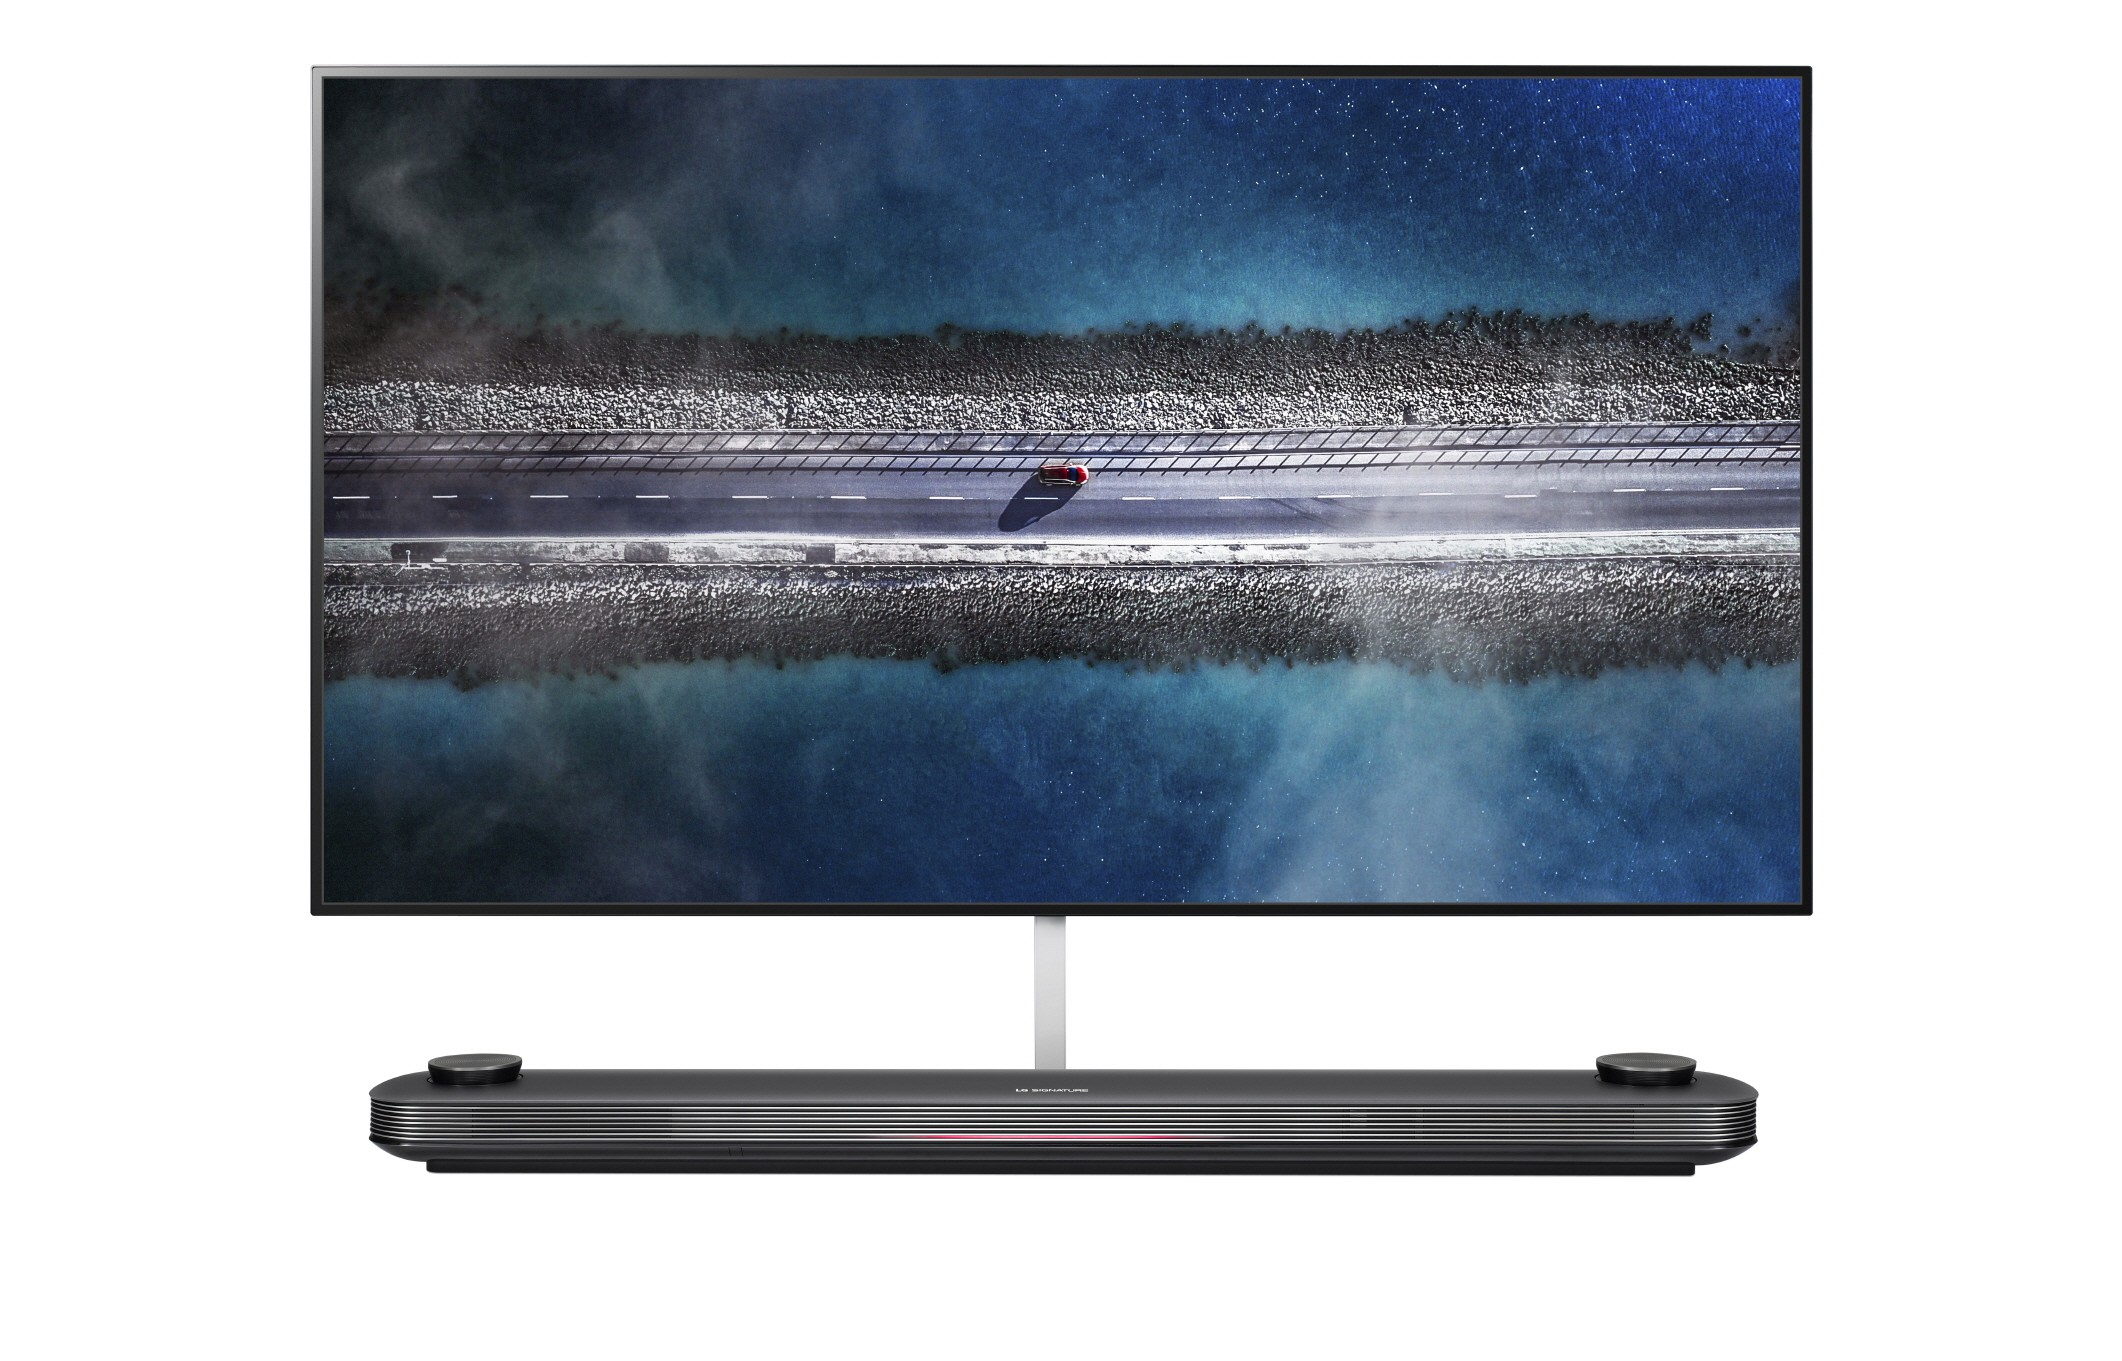 A front view of LG OLED TV W9.